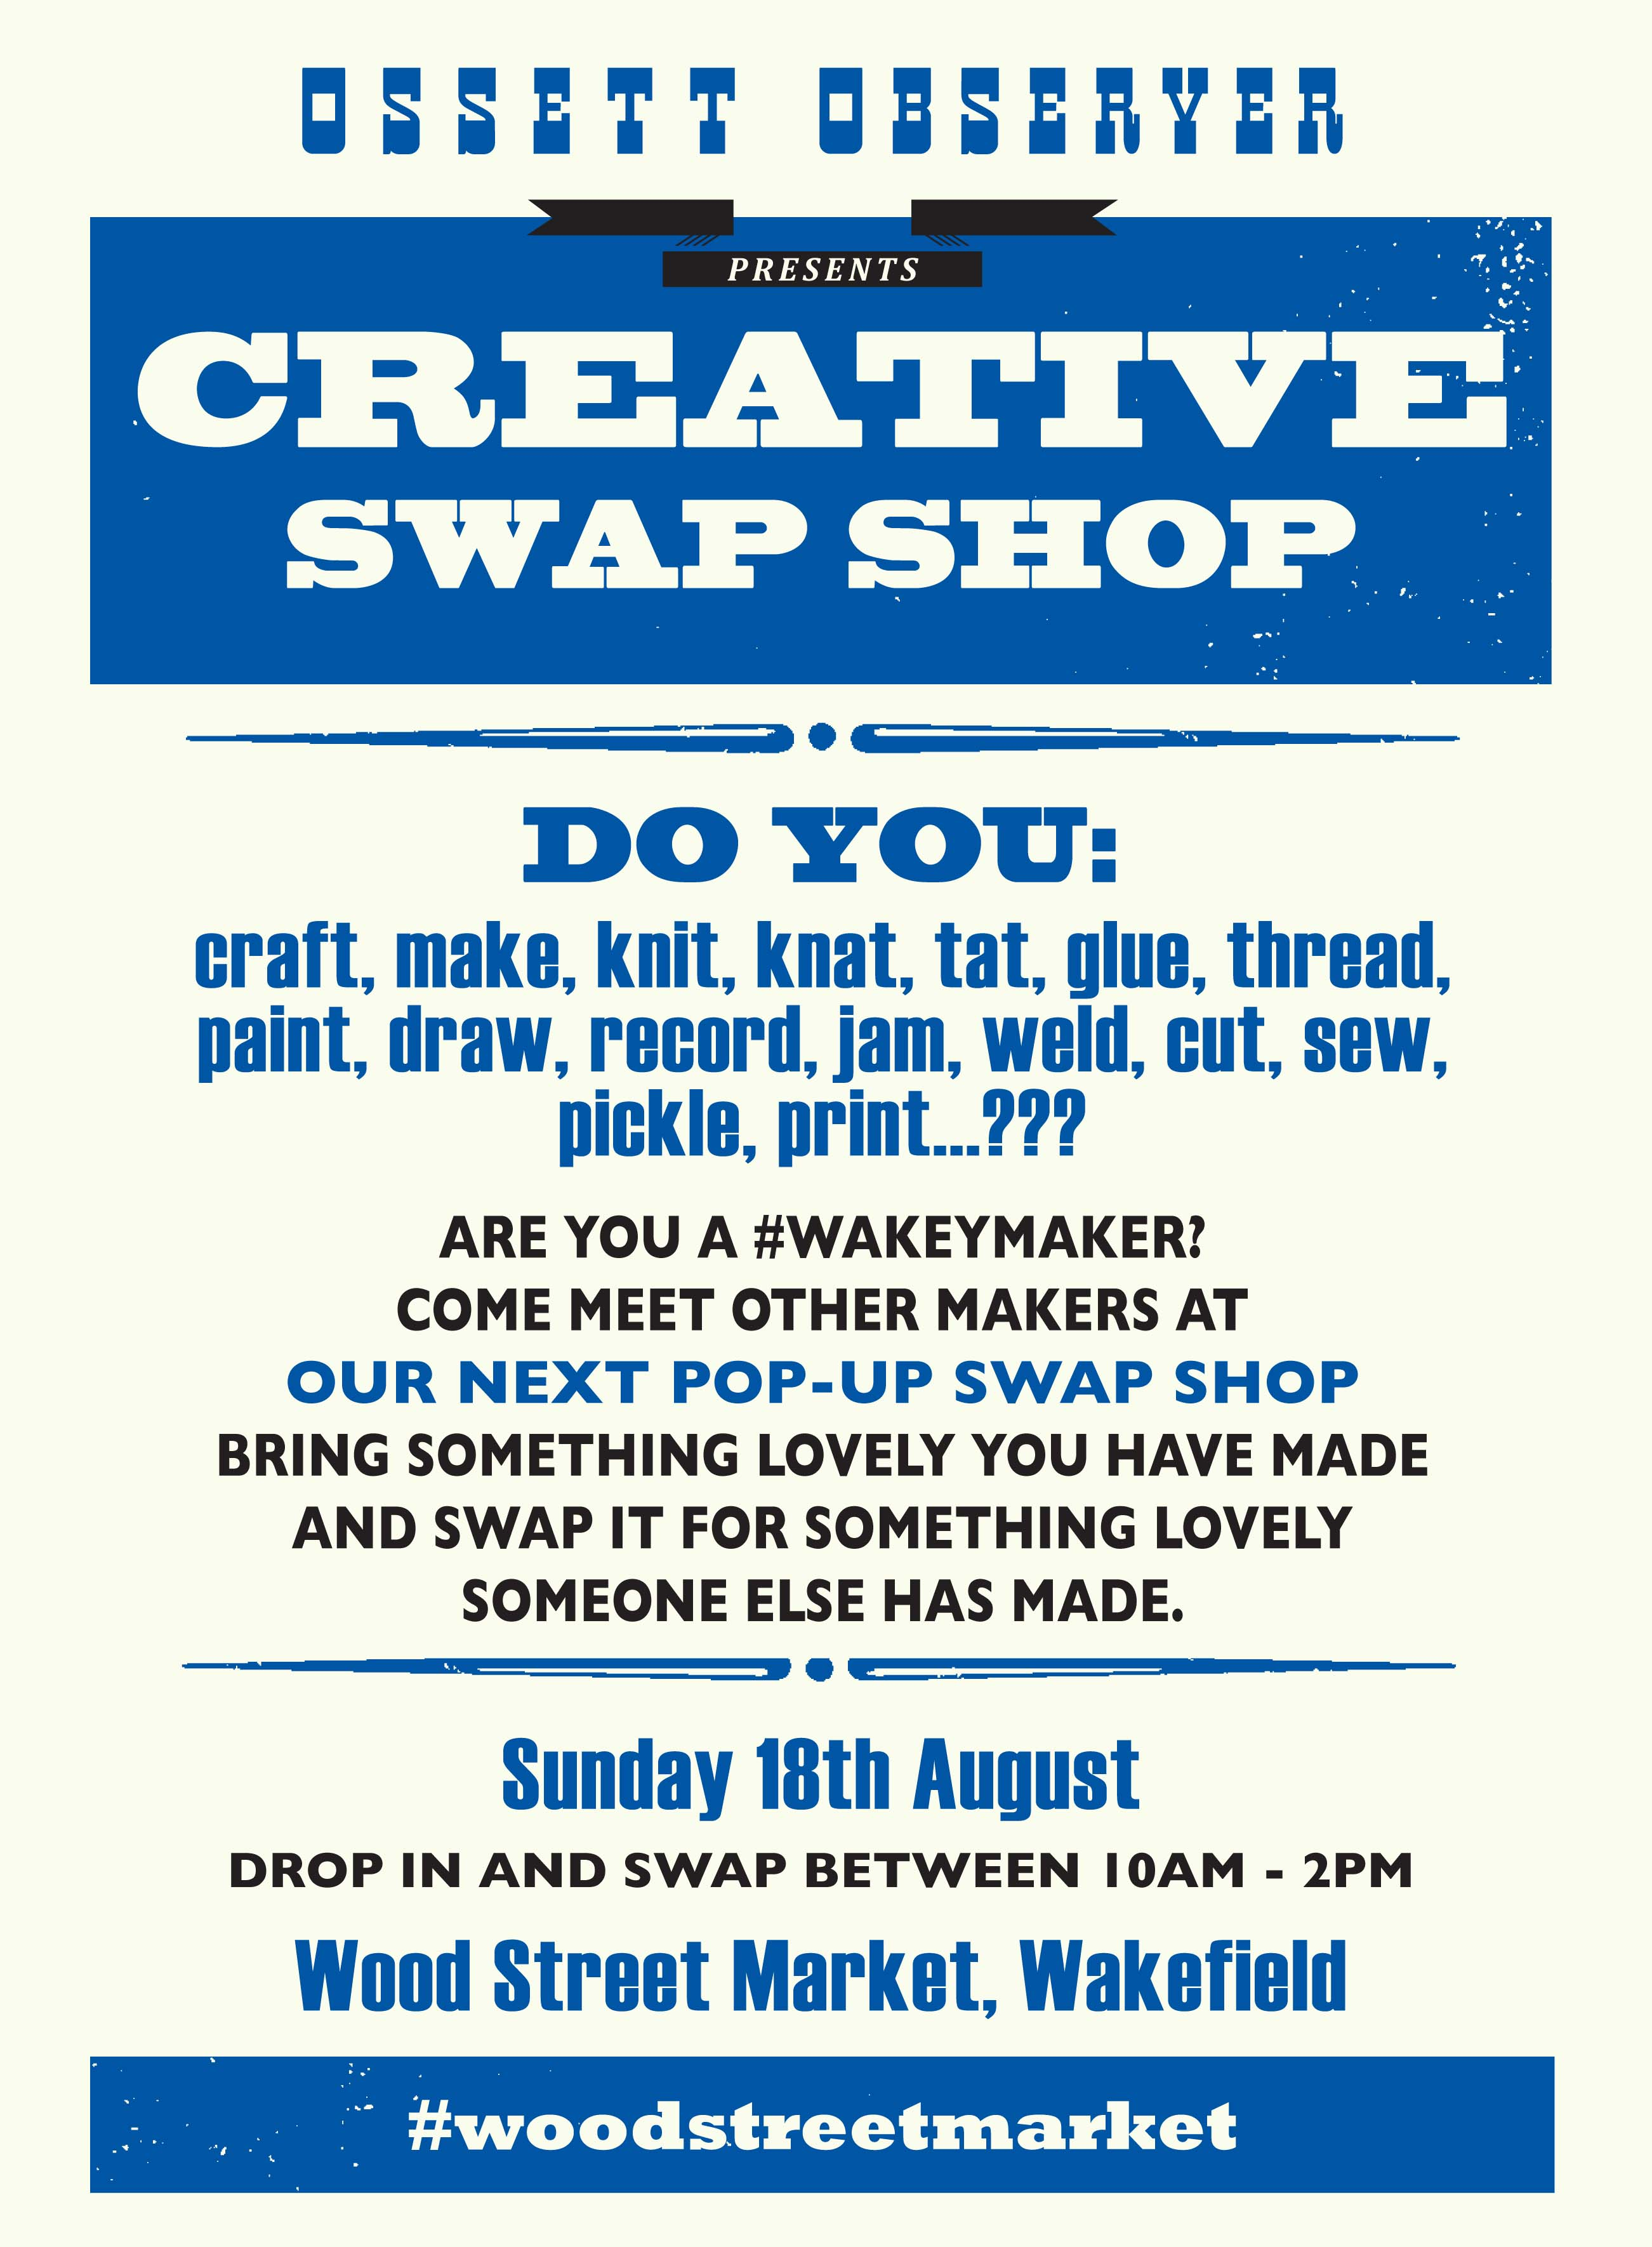 Creative Swapshop 2013 Post Card 18 Aug_Artwork